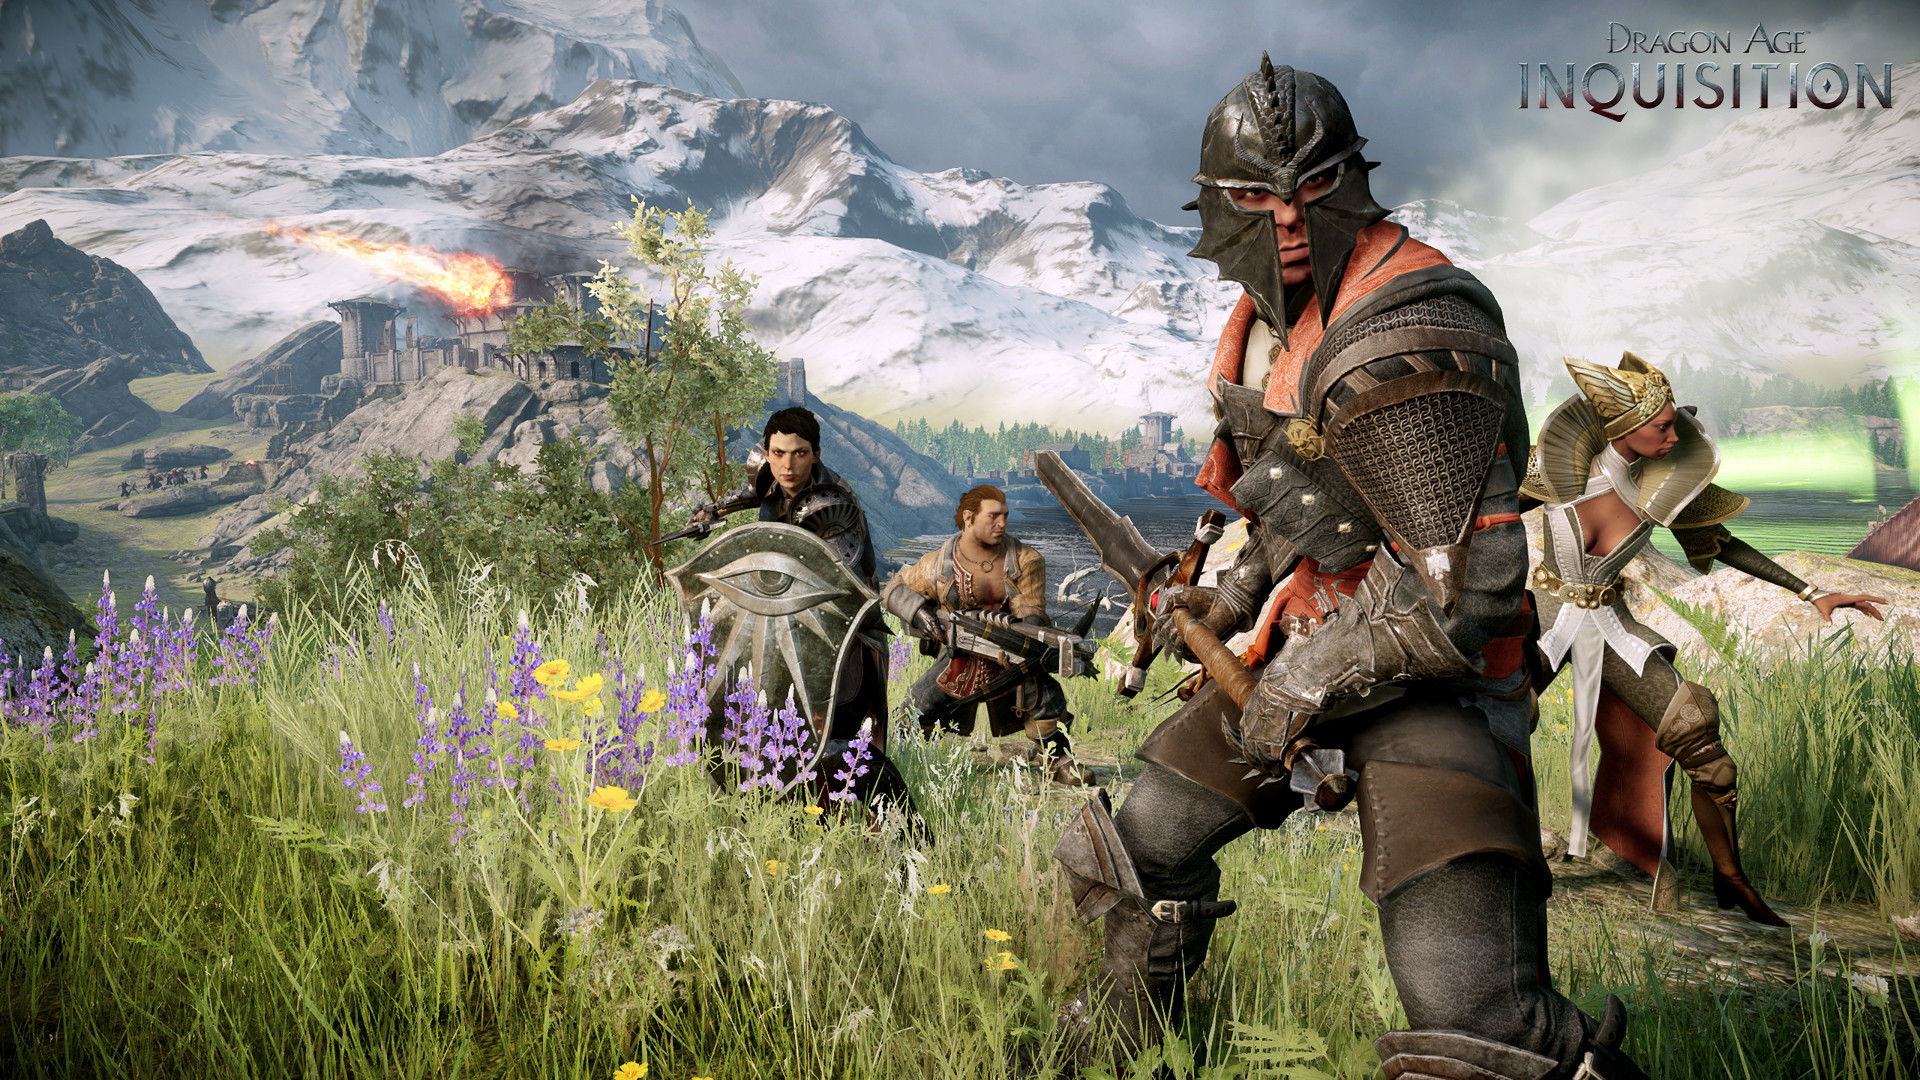 dragon age inquisition game wallpaper